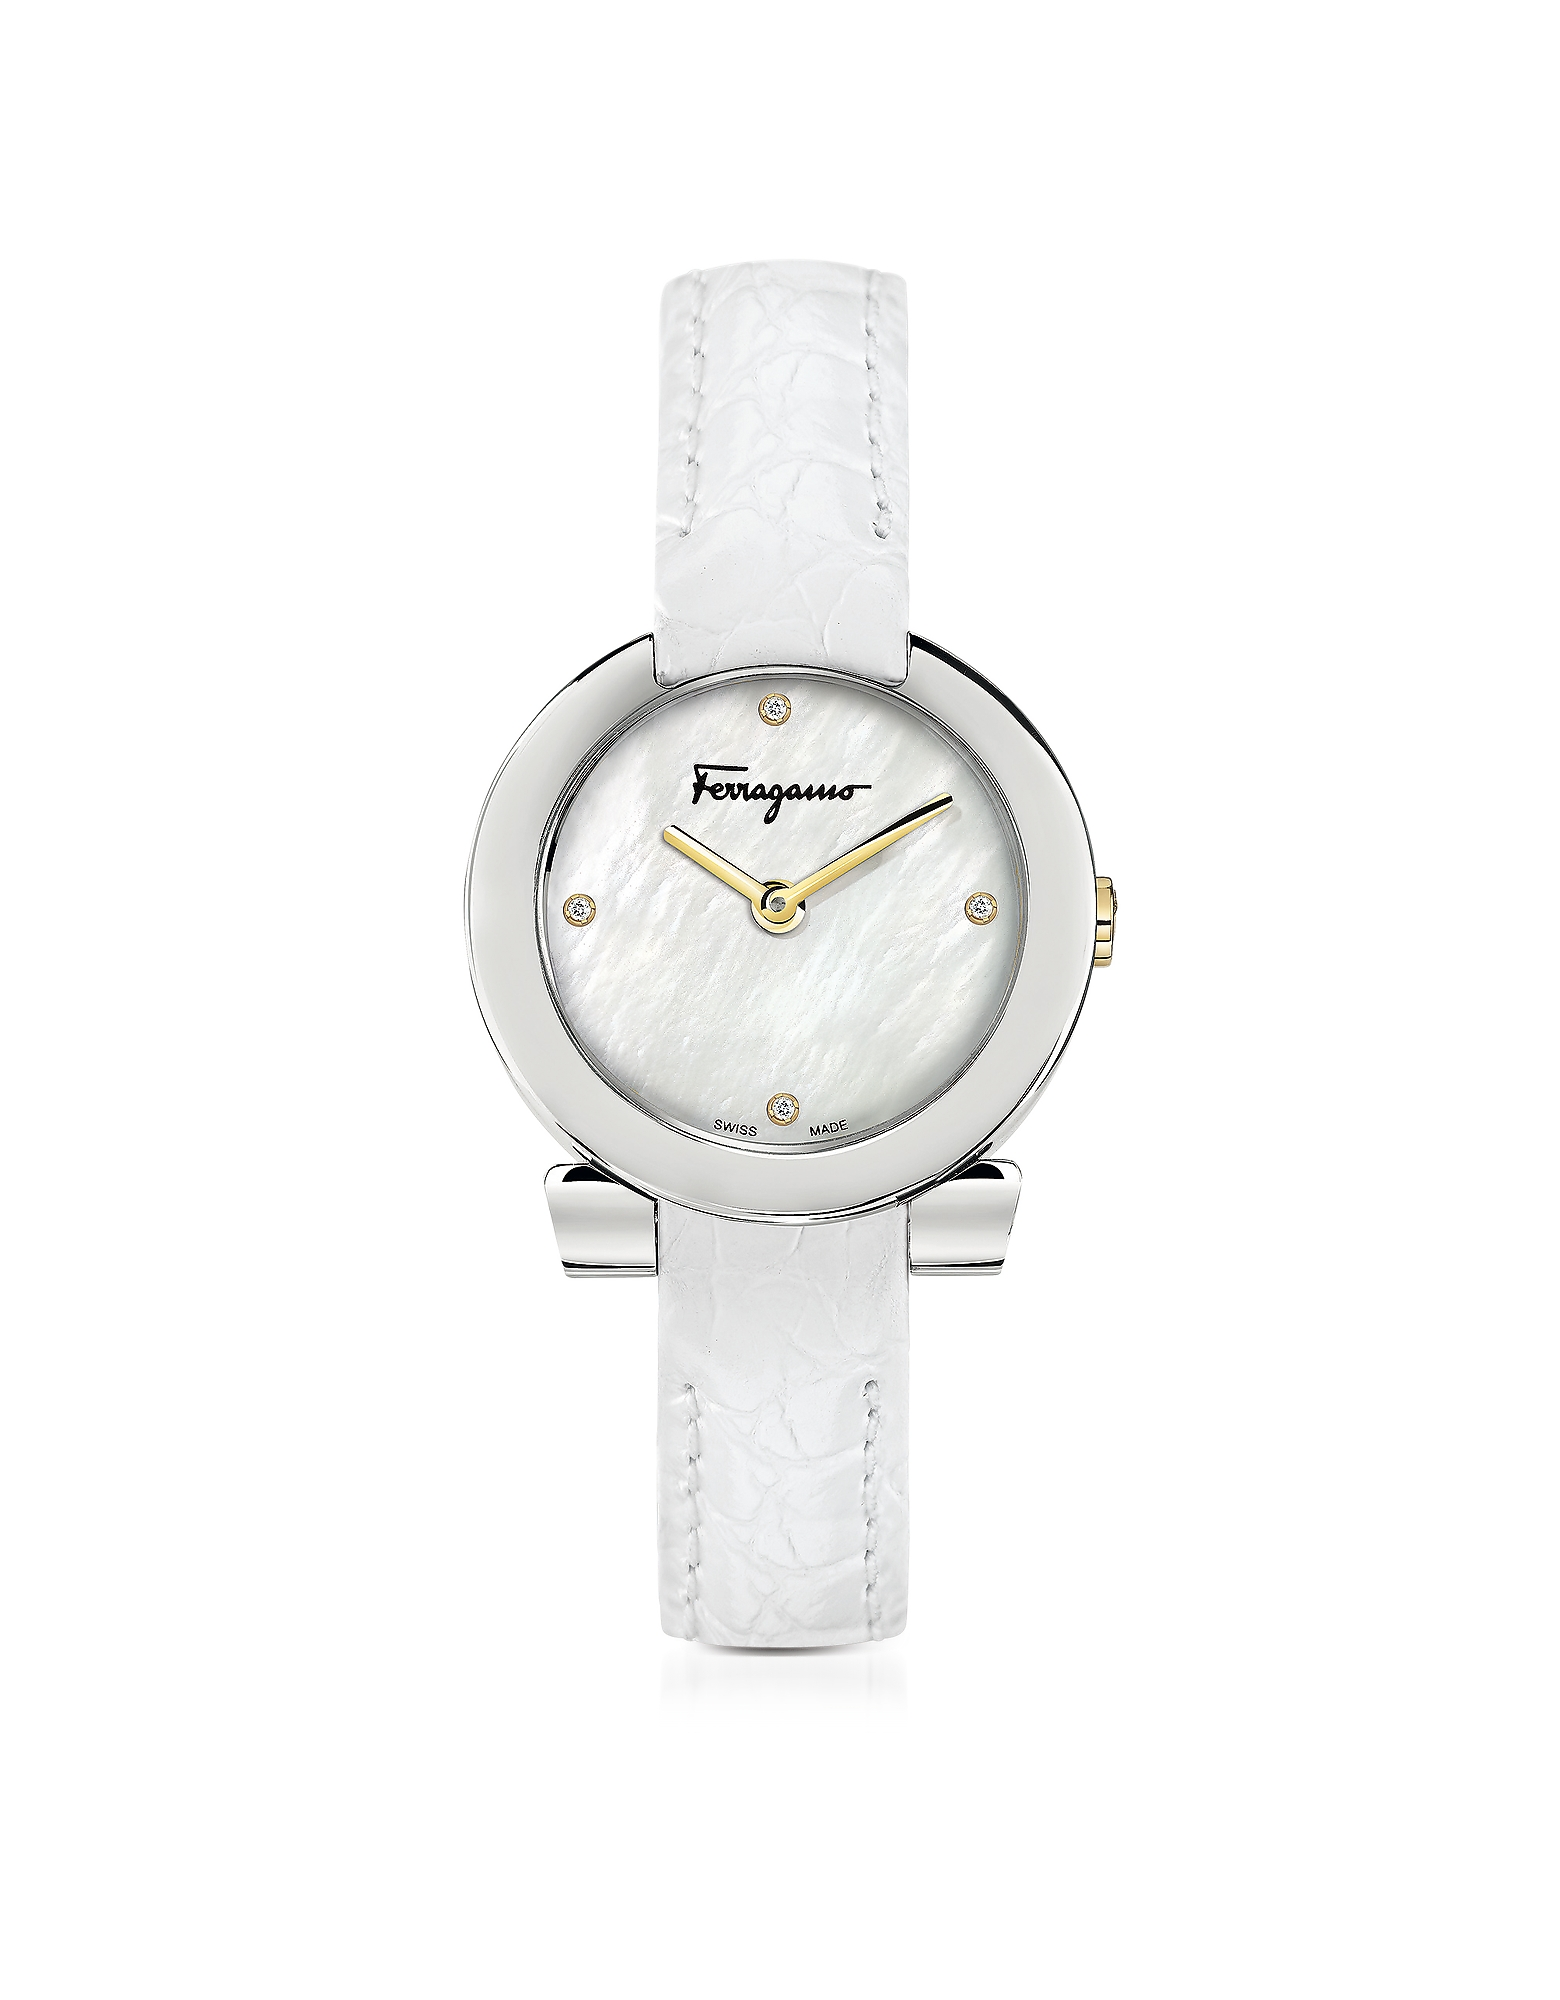 Salvatore Ferragamo Women's Watches, Gancino Stainless Steel and Diamonds Women's Watch w/White Croc